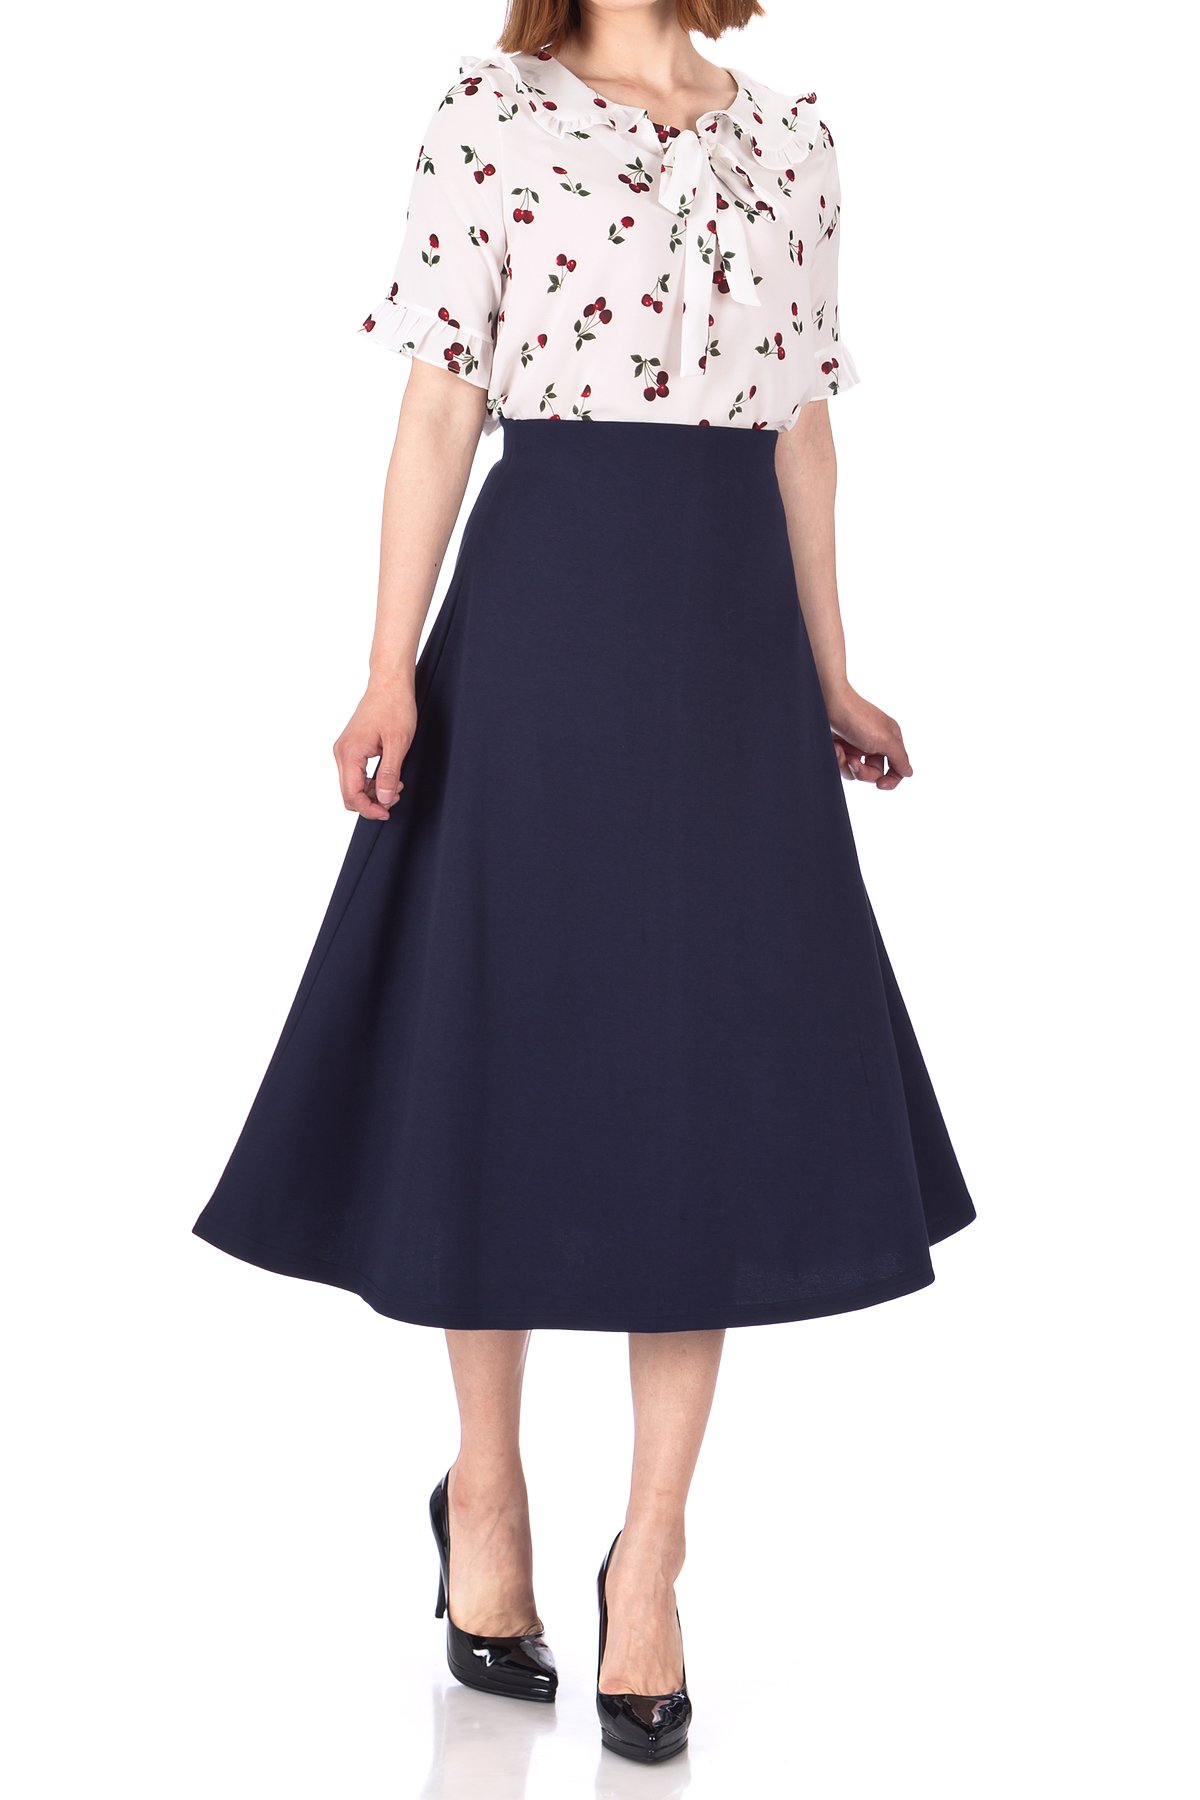 Elastic Waist A line Flared Long Skirt Navy 01 1